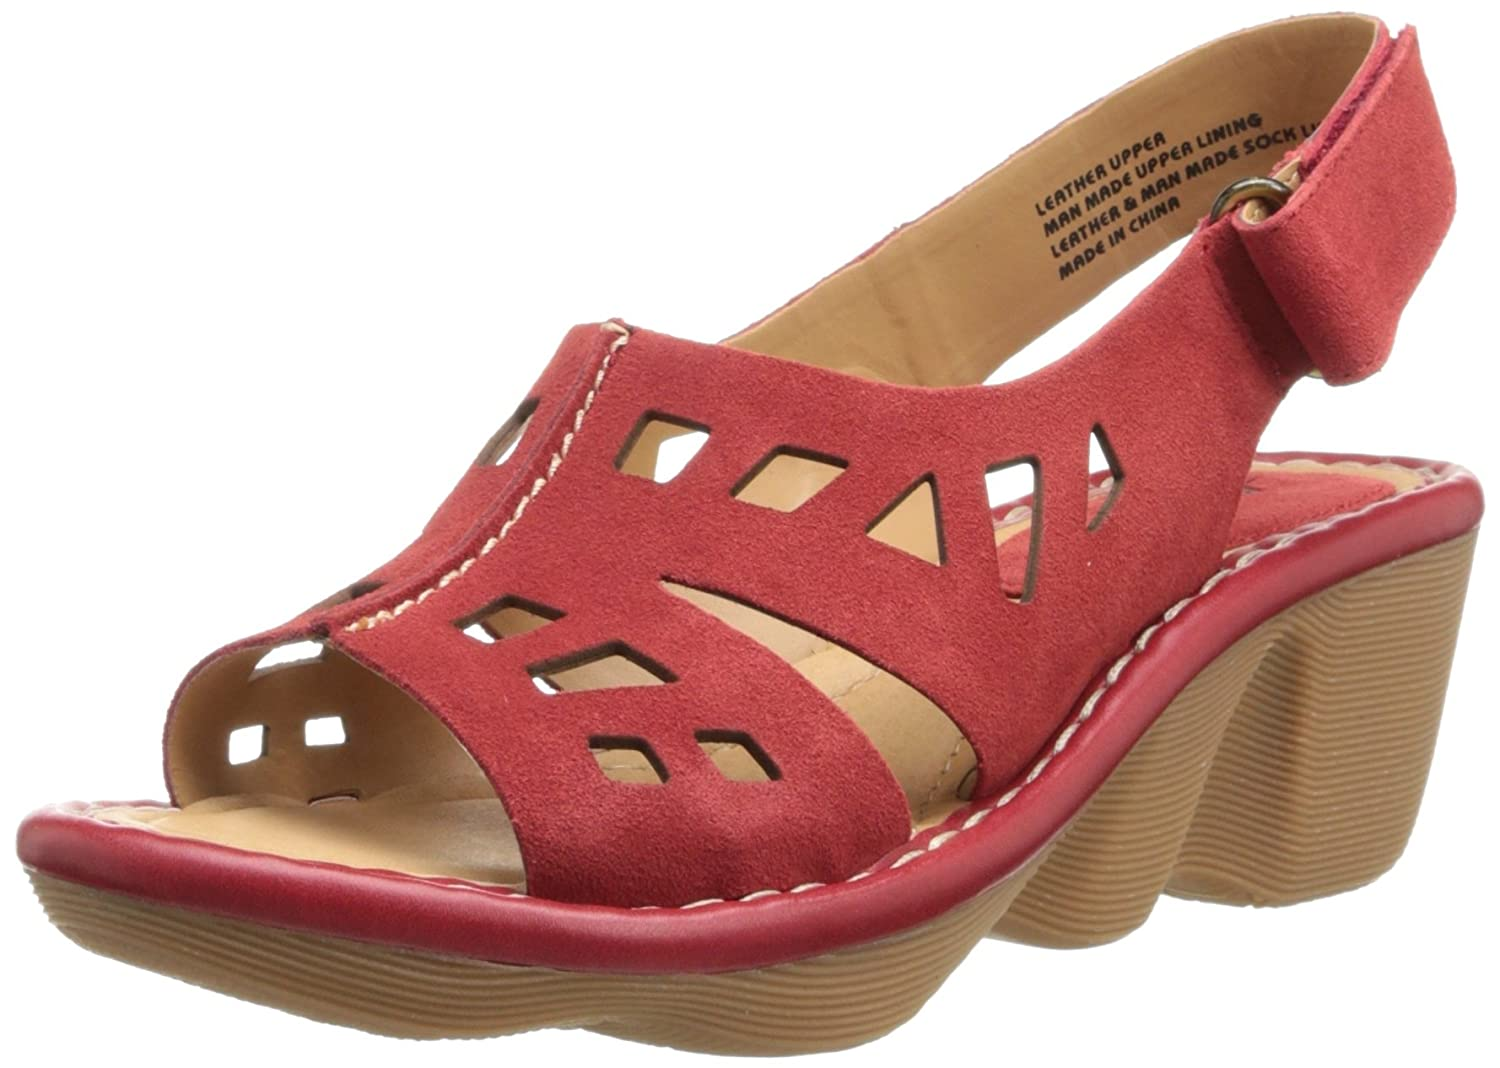 Earth Women's Stargaze Wedge Sandal B00FYMMM0K 6.5 B(M) US|Jazzy Red